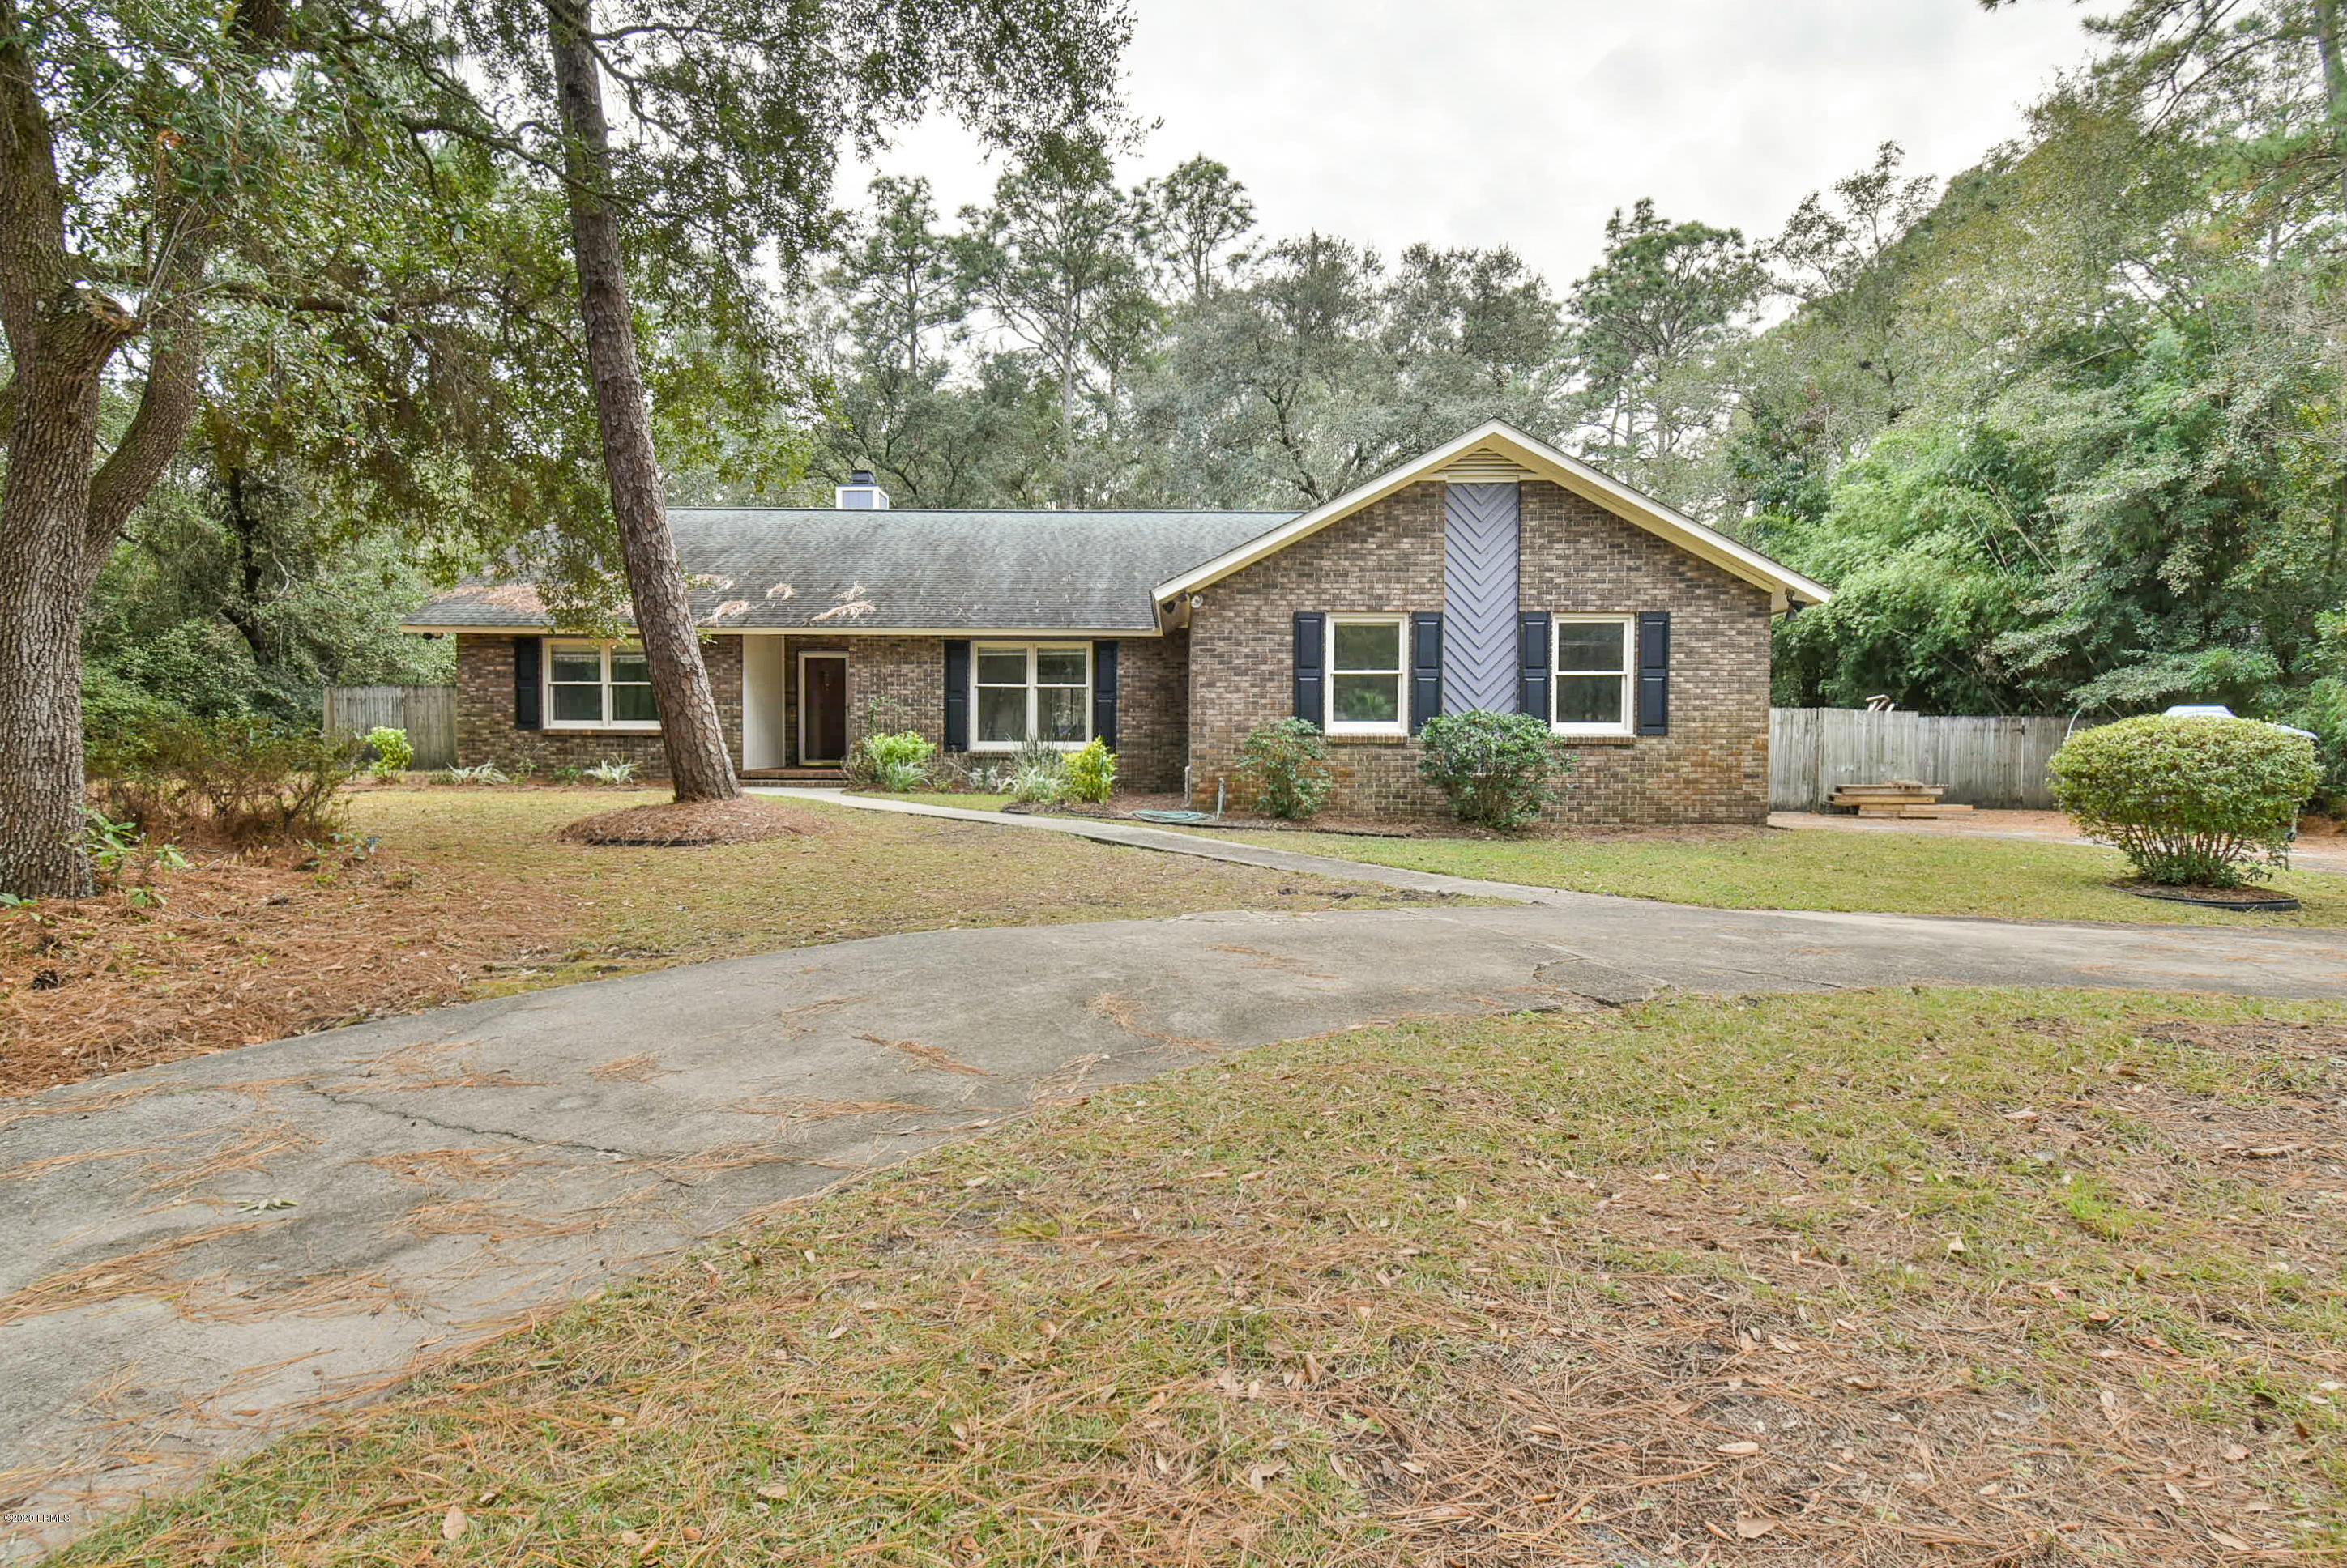 Photo of 1 Pickens Street, Beaufort, SC 29907